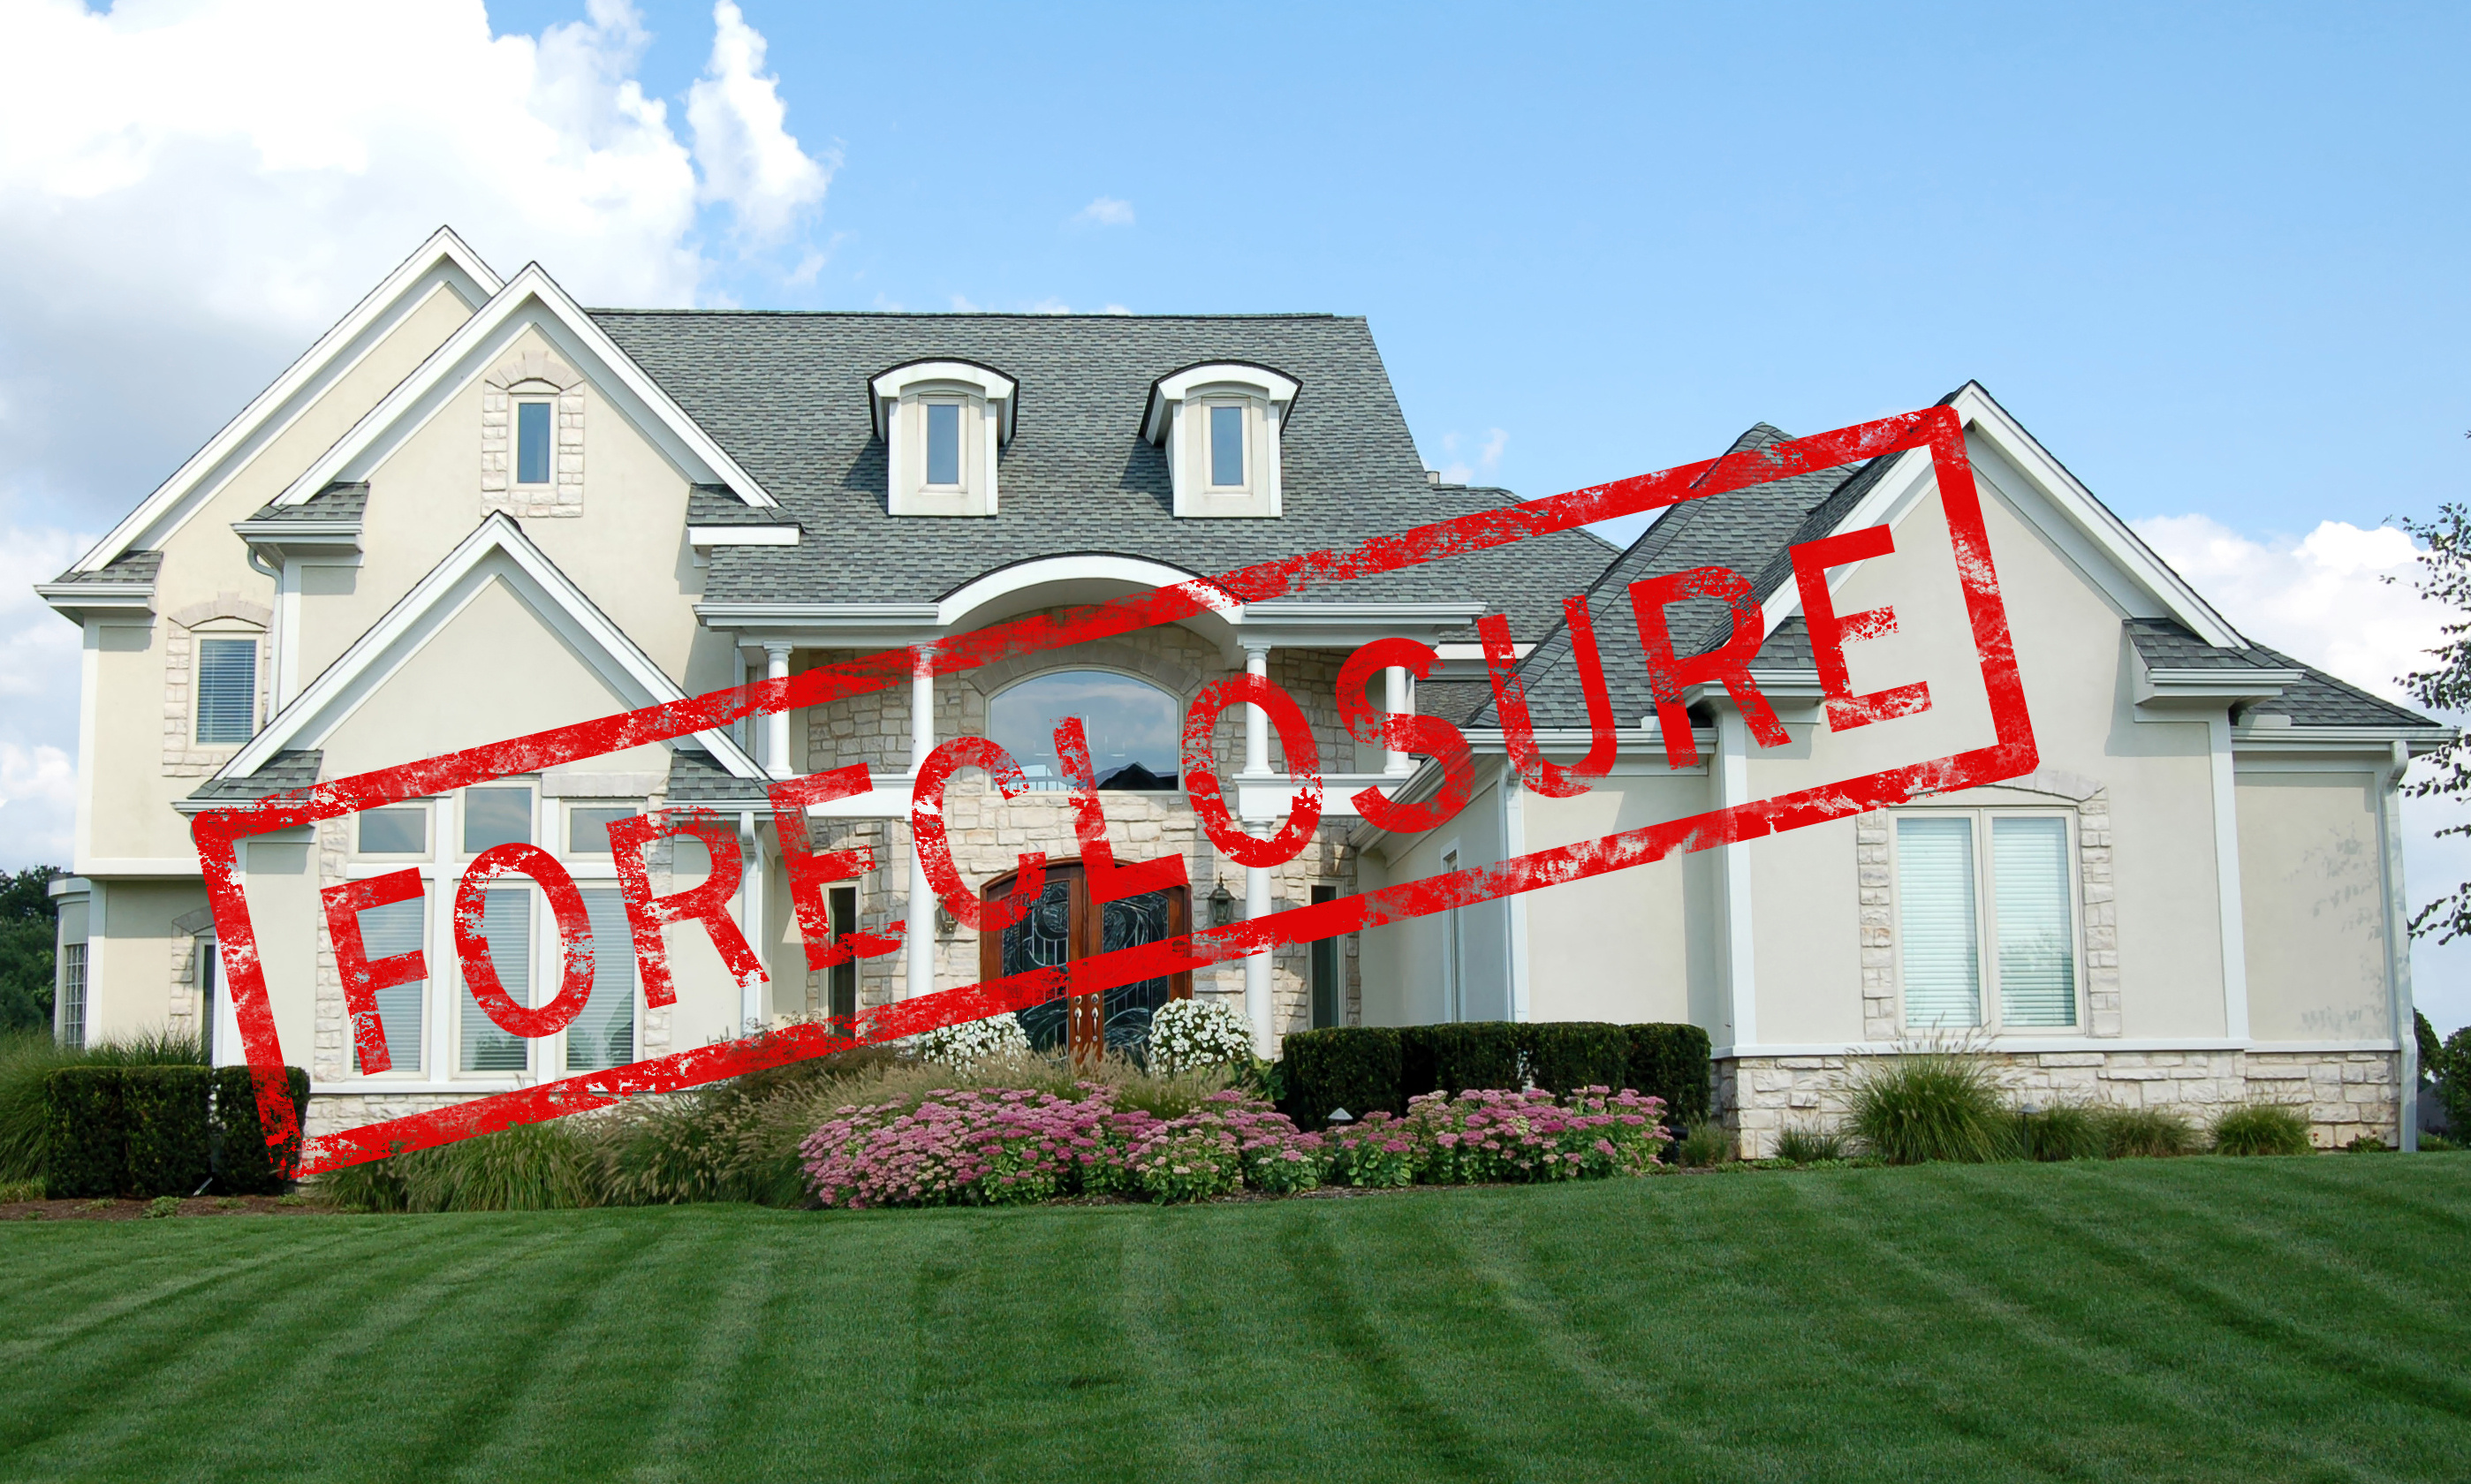 Call Anderson Appraisal, LLC when you need appraisals of Potter foreclosures